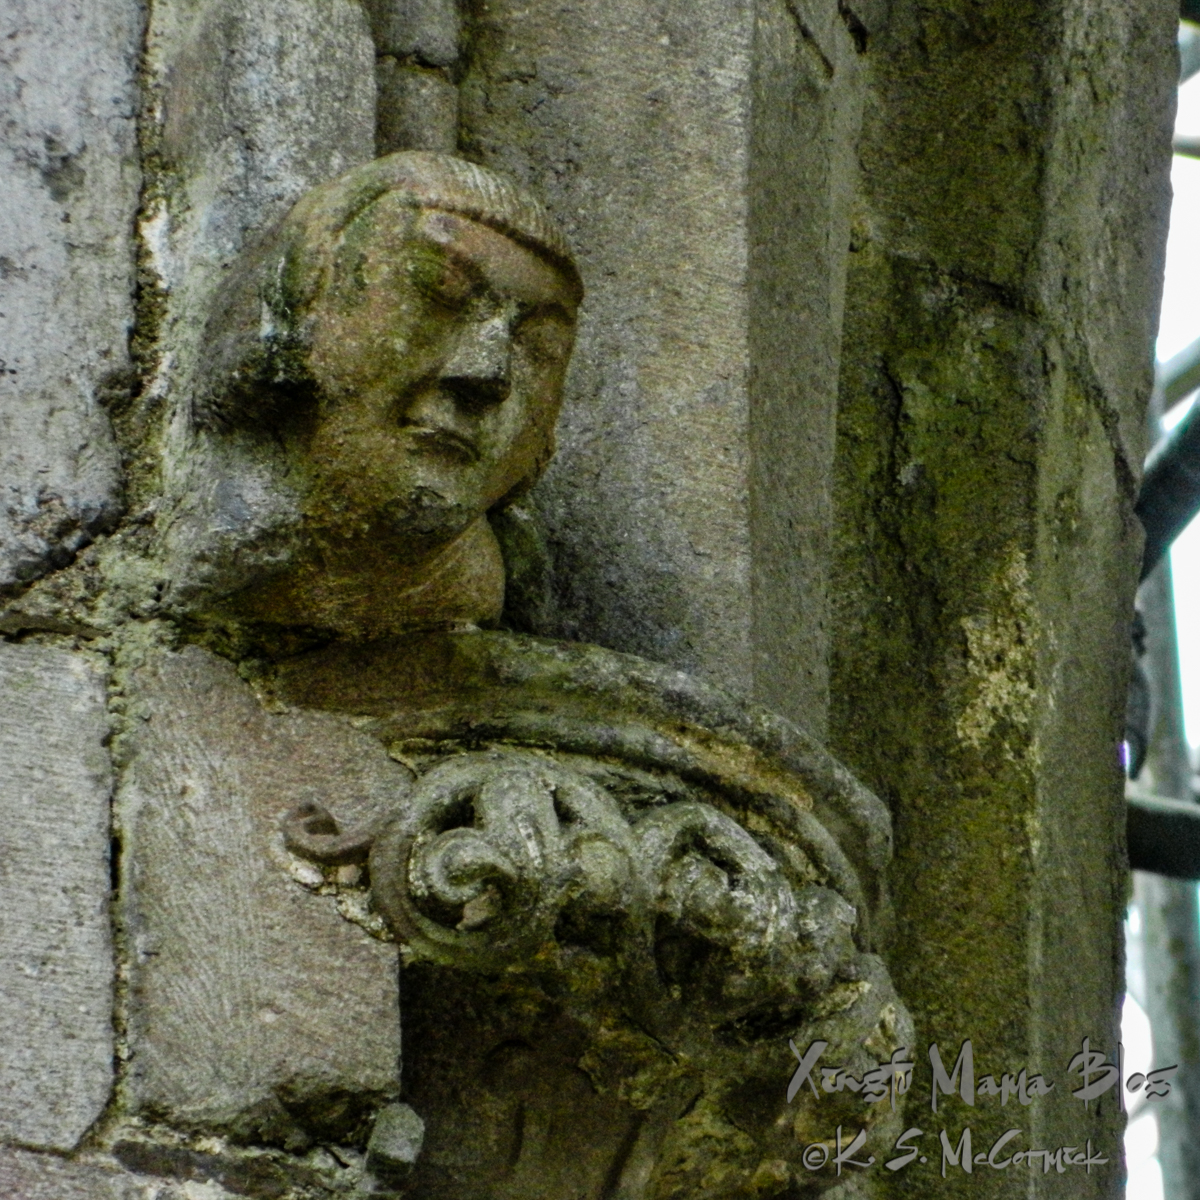 The carved head of an important church man looks down on those walking through St. Patrick's Cathedral at the Rock of Cashel in Ireland.